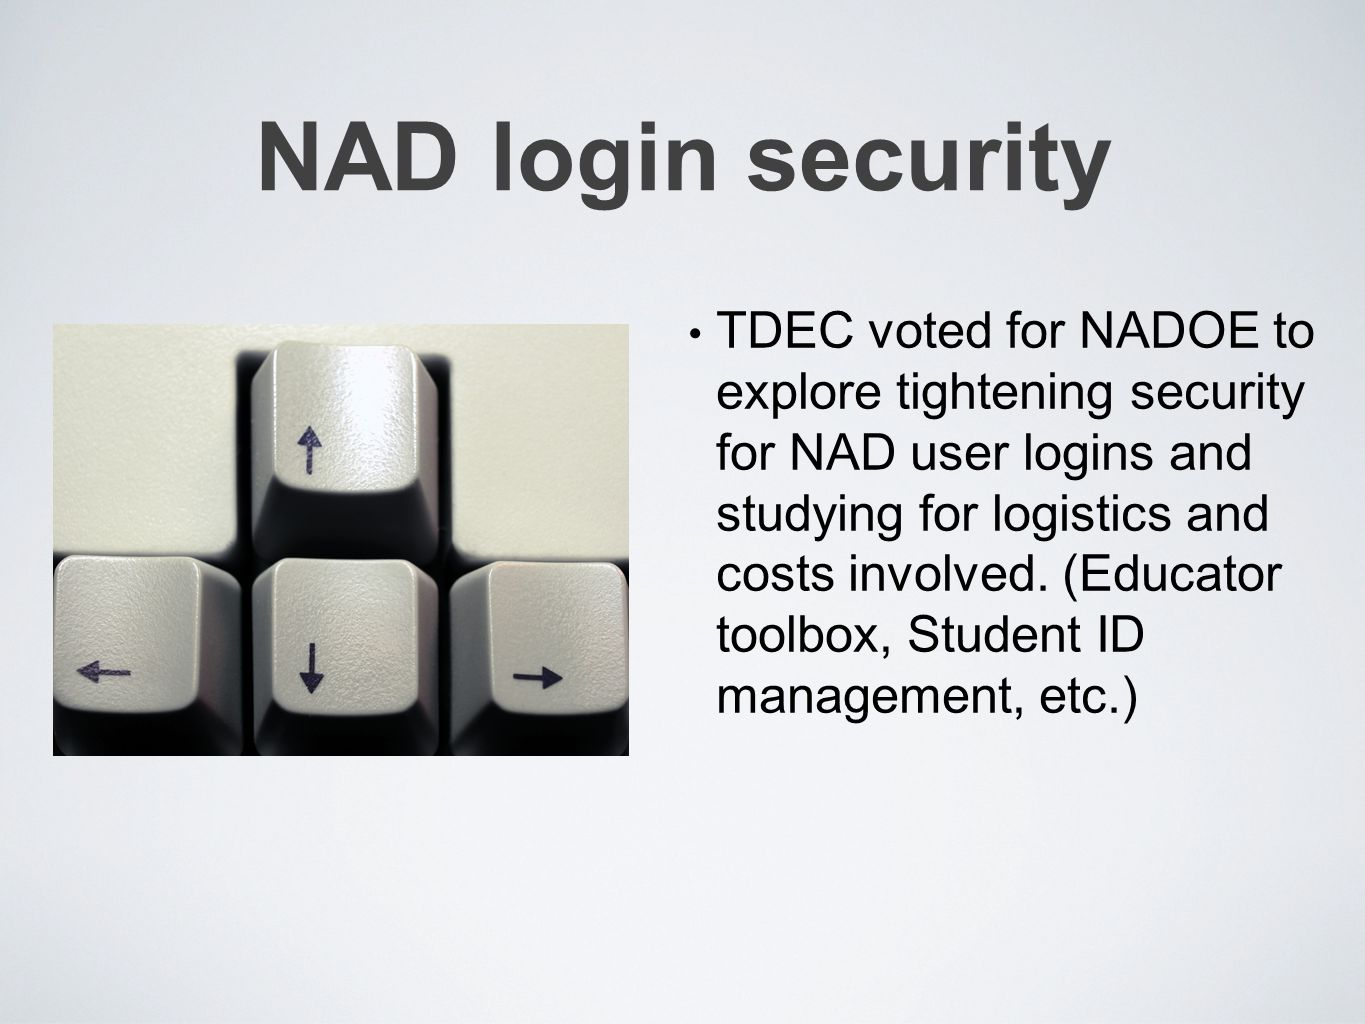 NAD login security TDEC voted for NADOE to explore tightening security for NAD user logins and studying for logistics and costs involved.